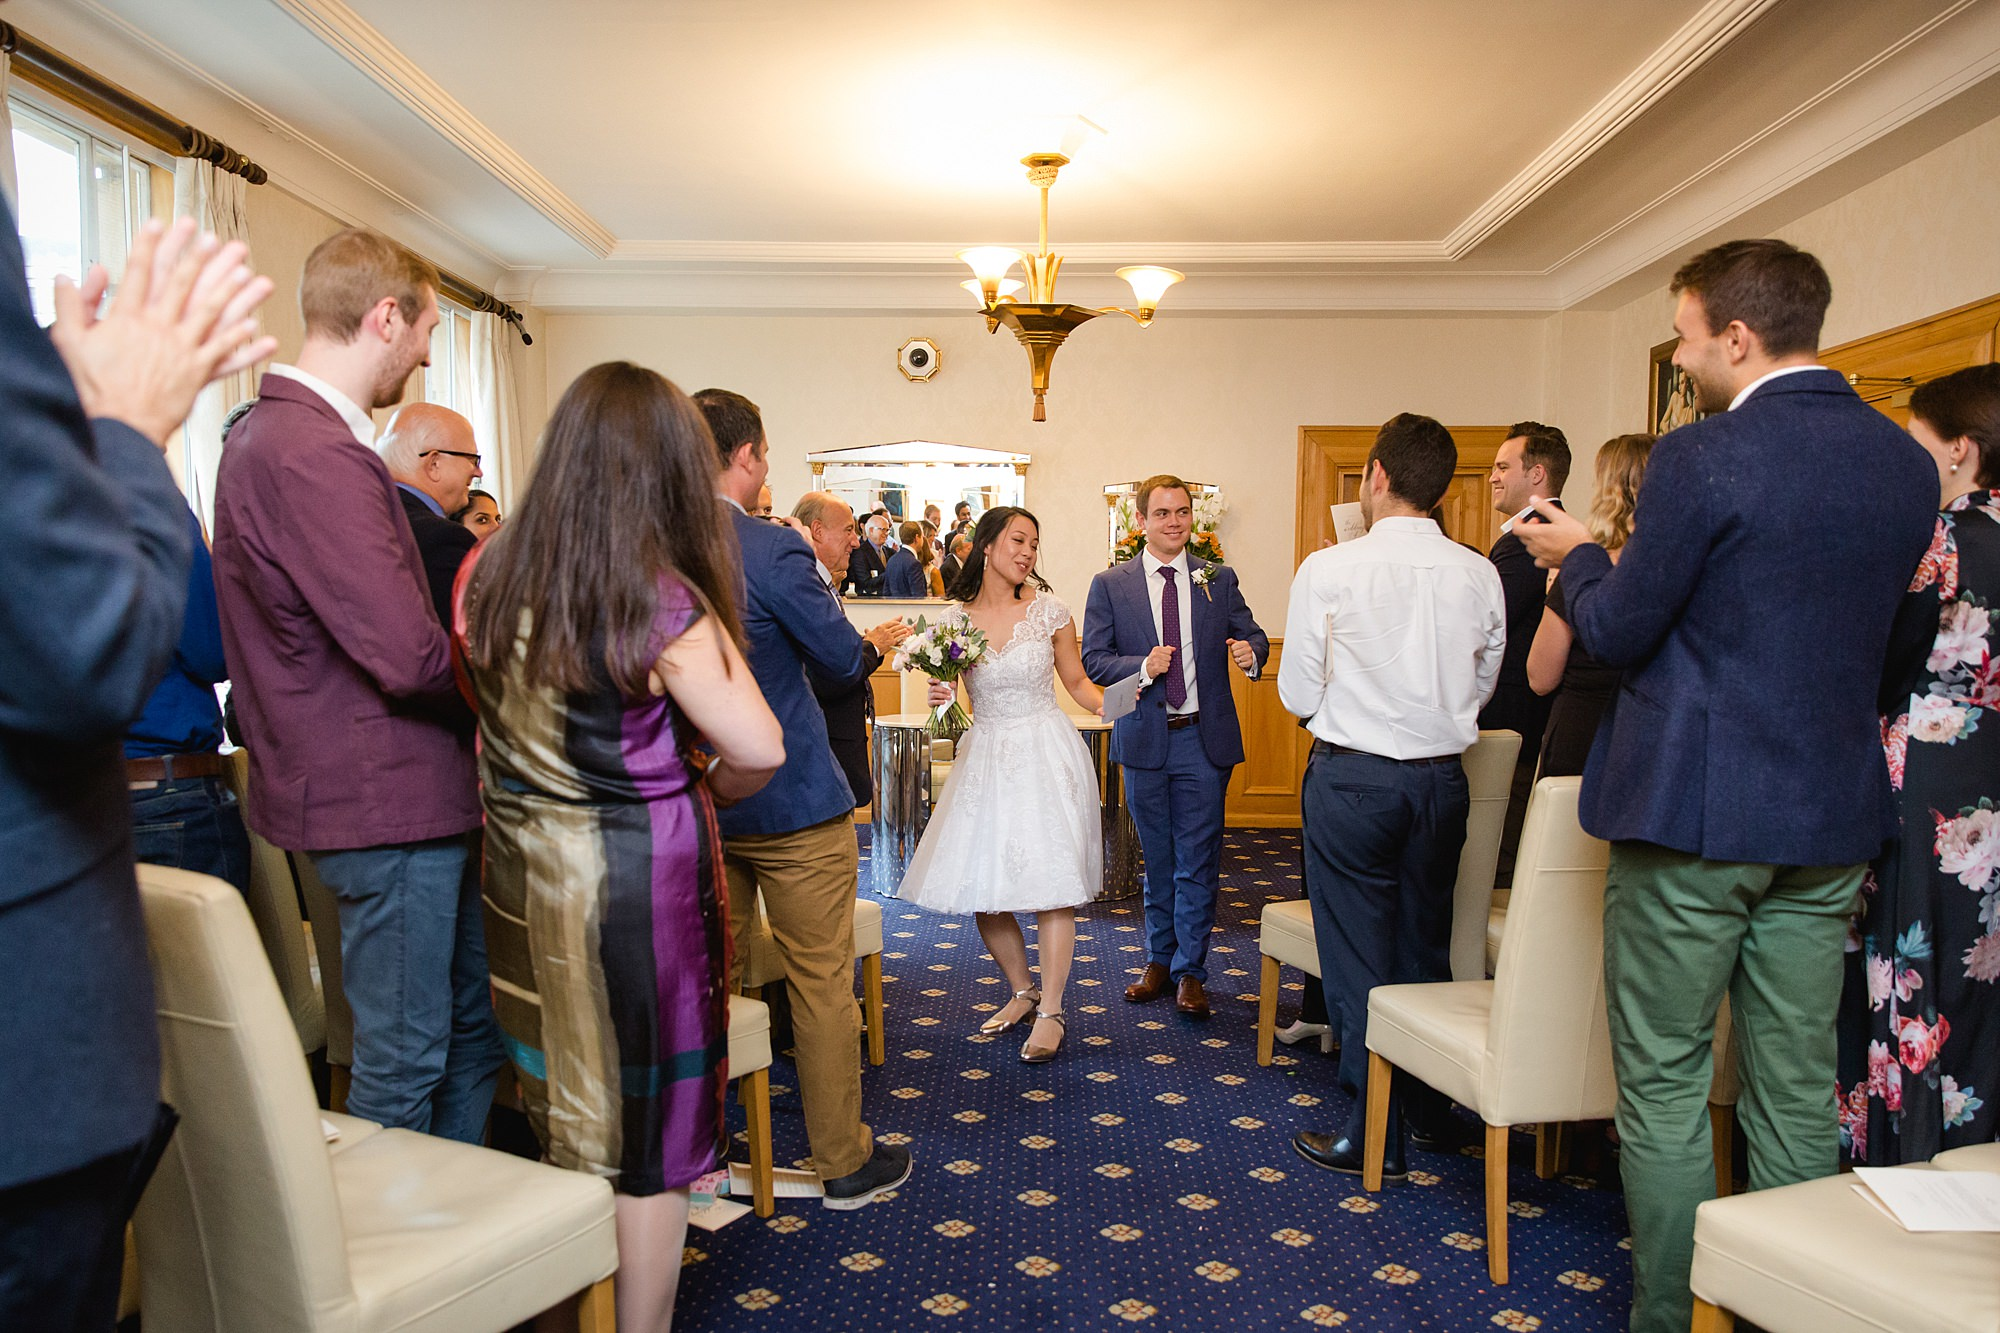 Wandsworth pub wedding bride and groom dance back down aisle